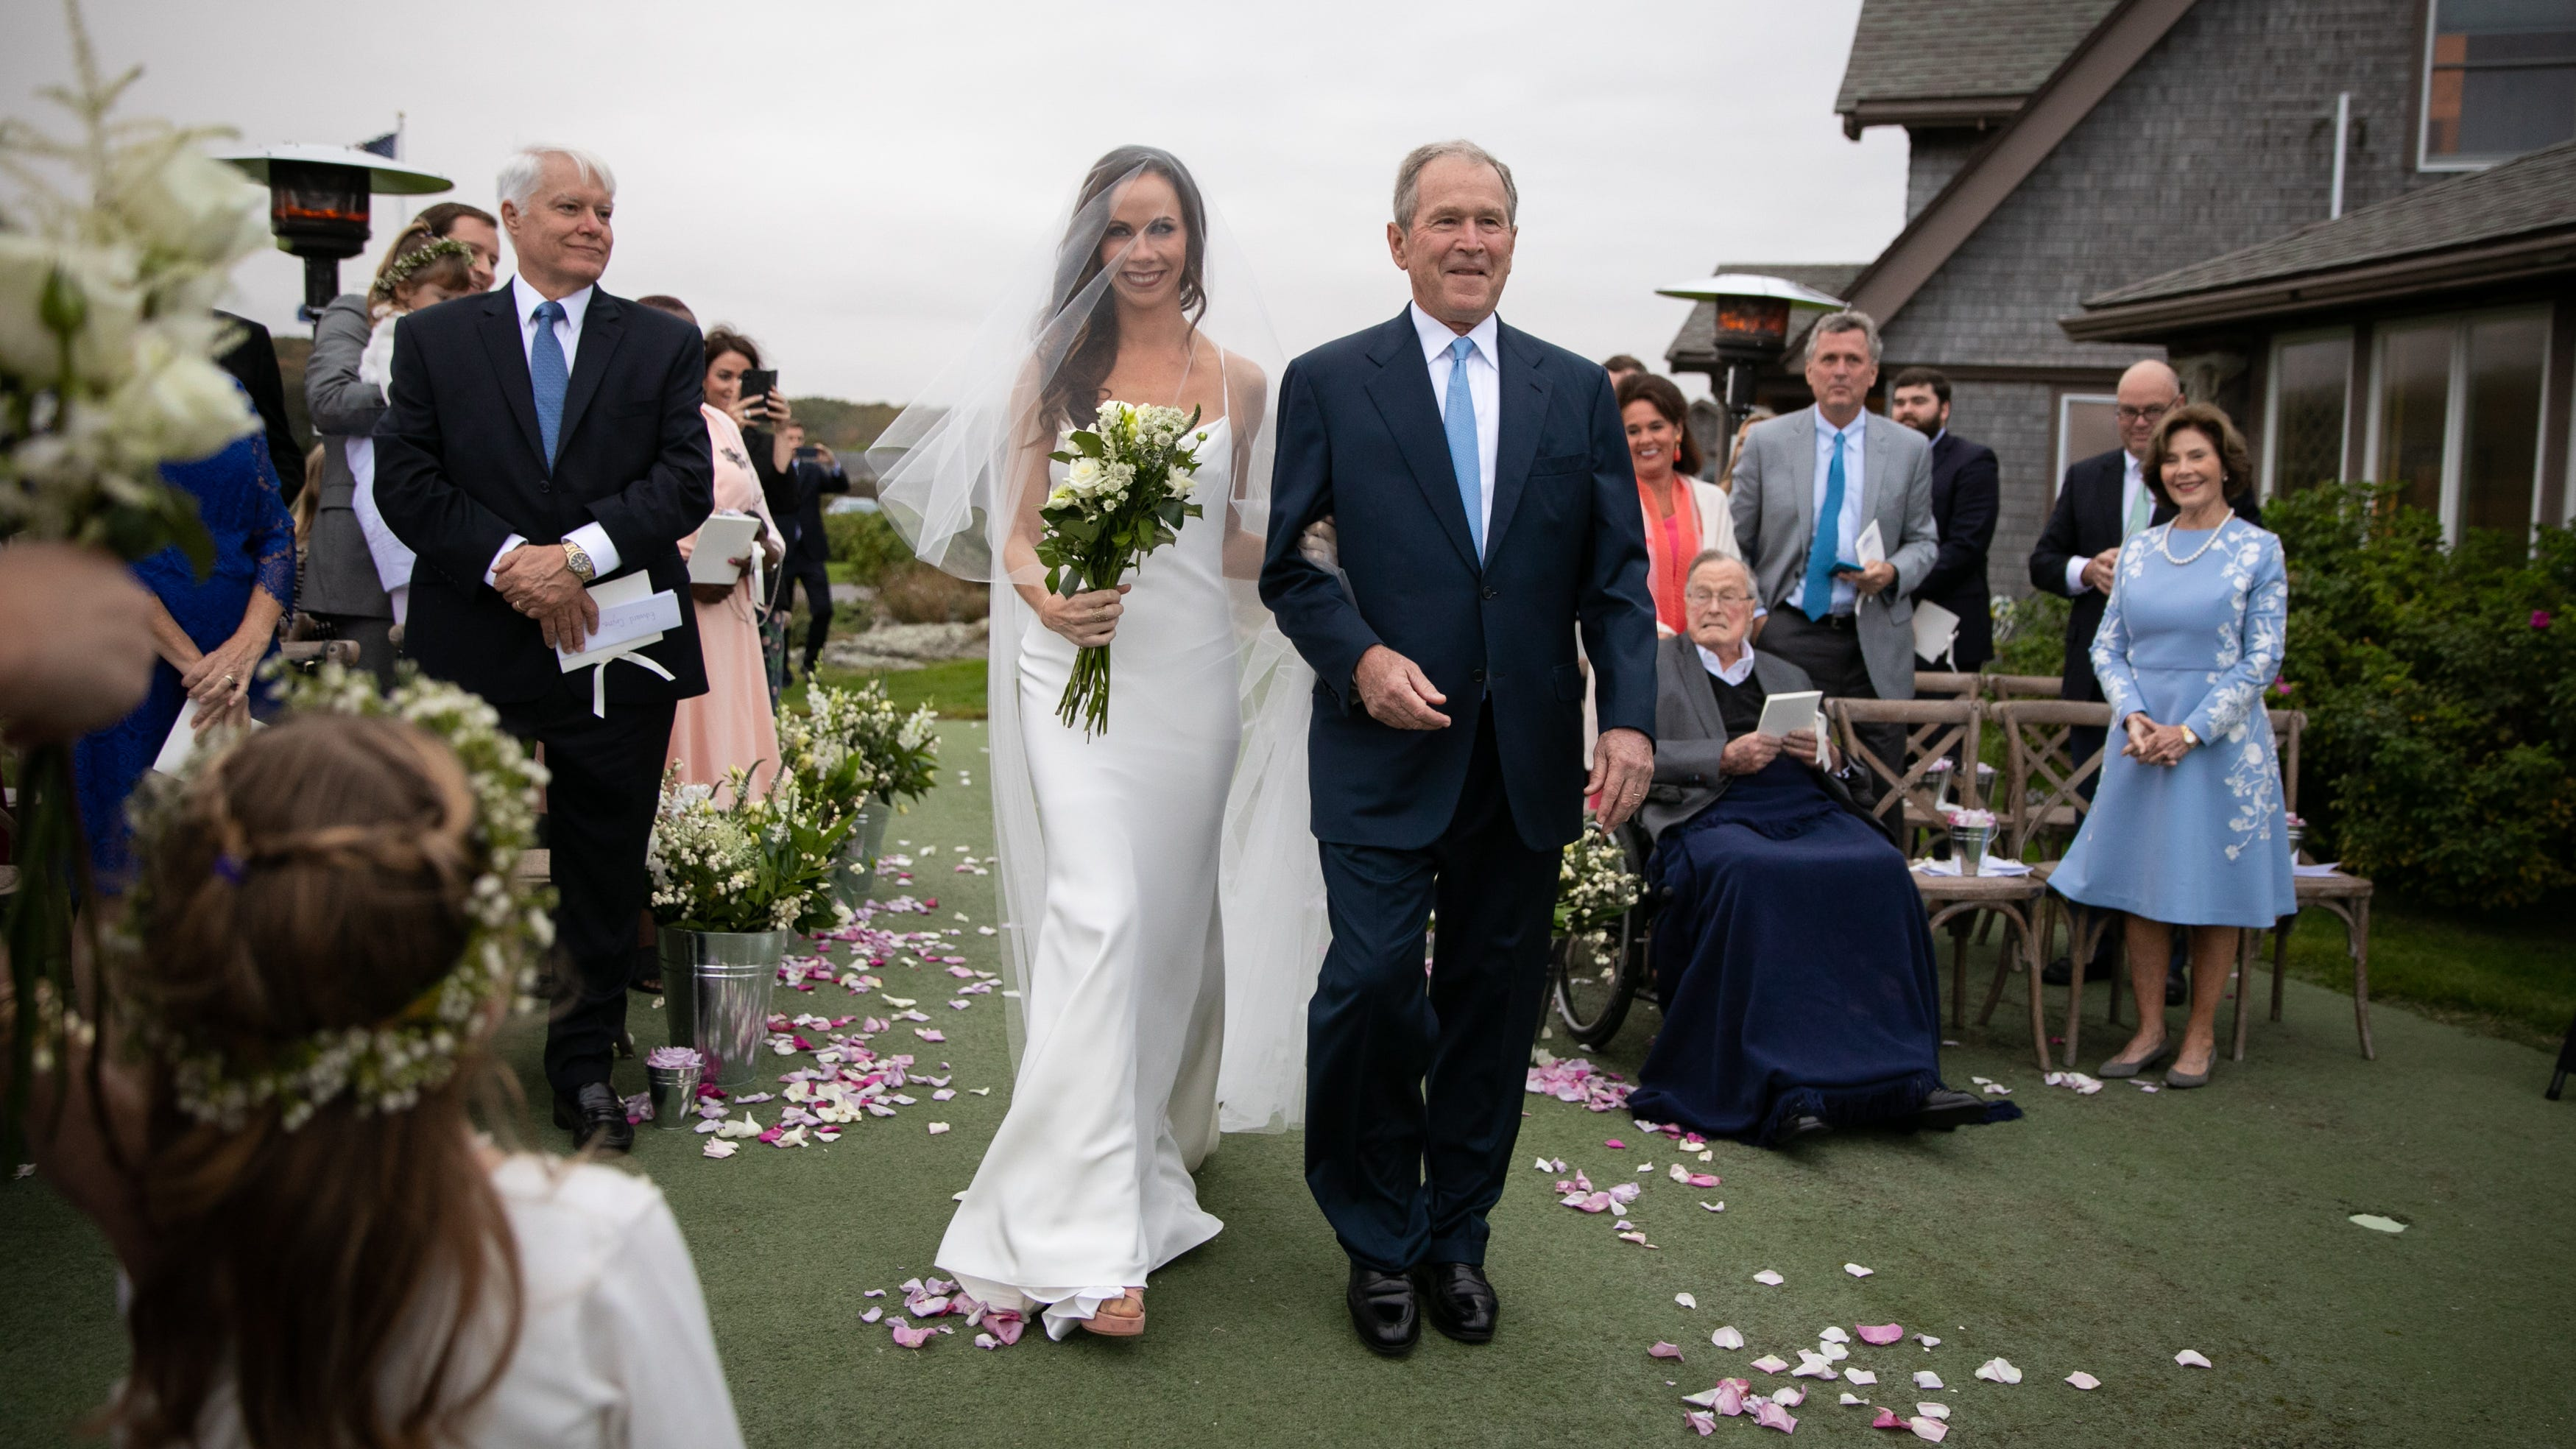 Barbara Pierce Bush walks down the aisle with her father George W. Bush on the occasion of her wedding to Craig Coyne in Kennebunkport, Maine, on Oct. 7, 2018.